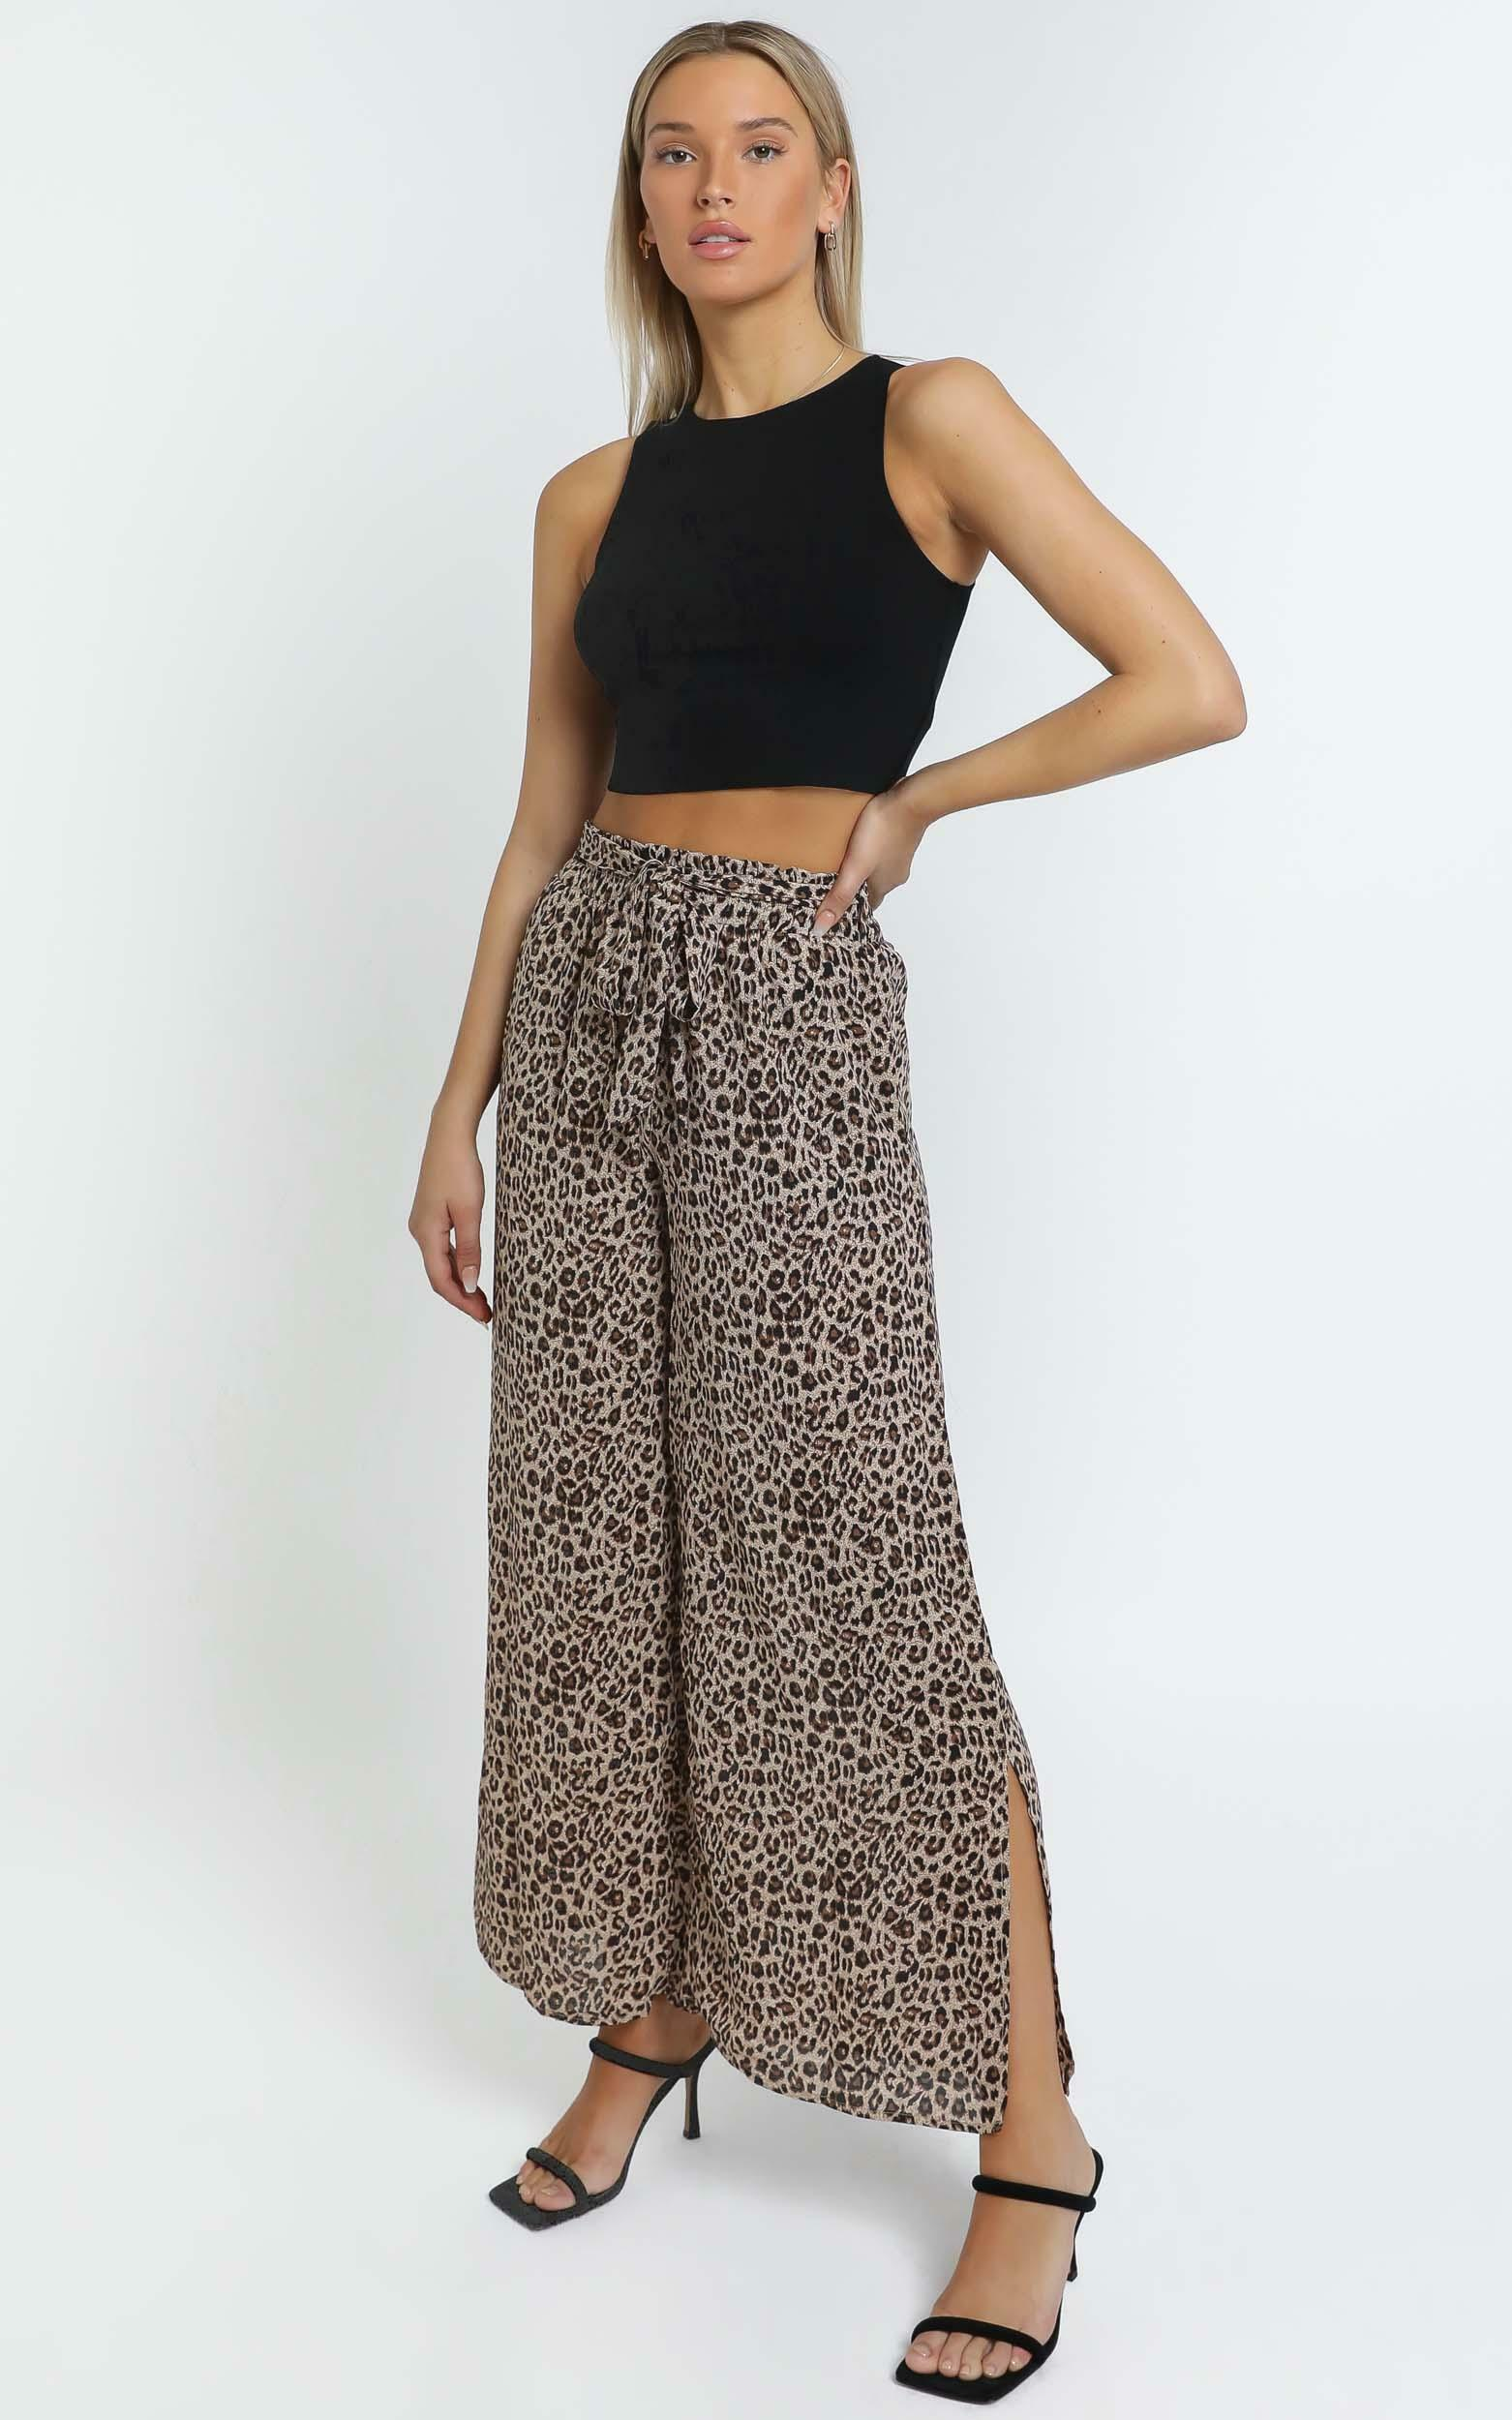 Keeva Pants in Leopard Print - 14 (XL), Brown, hi-res image number null